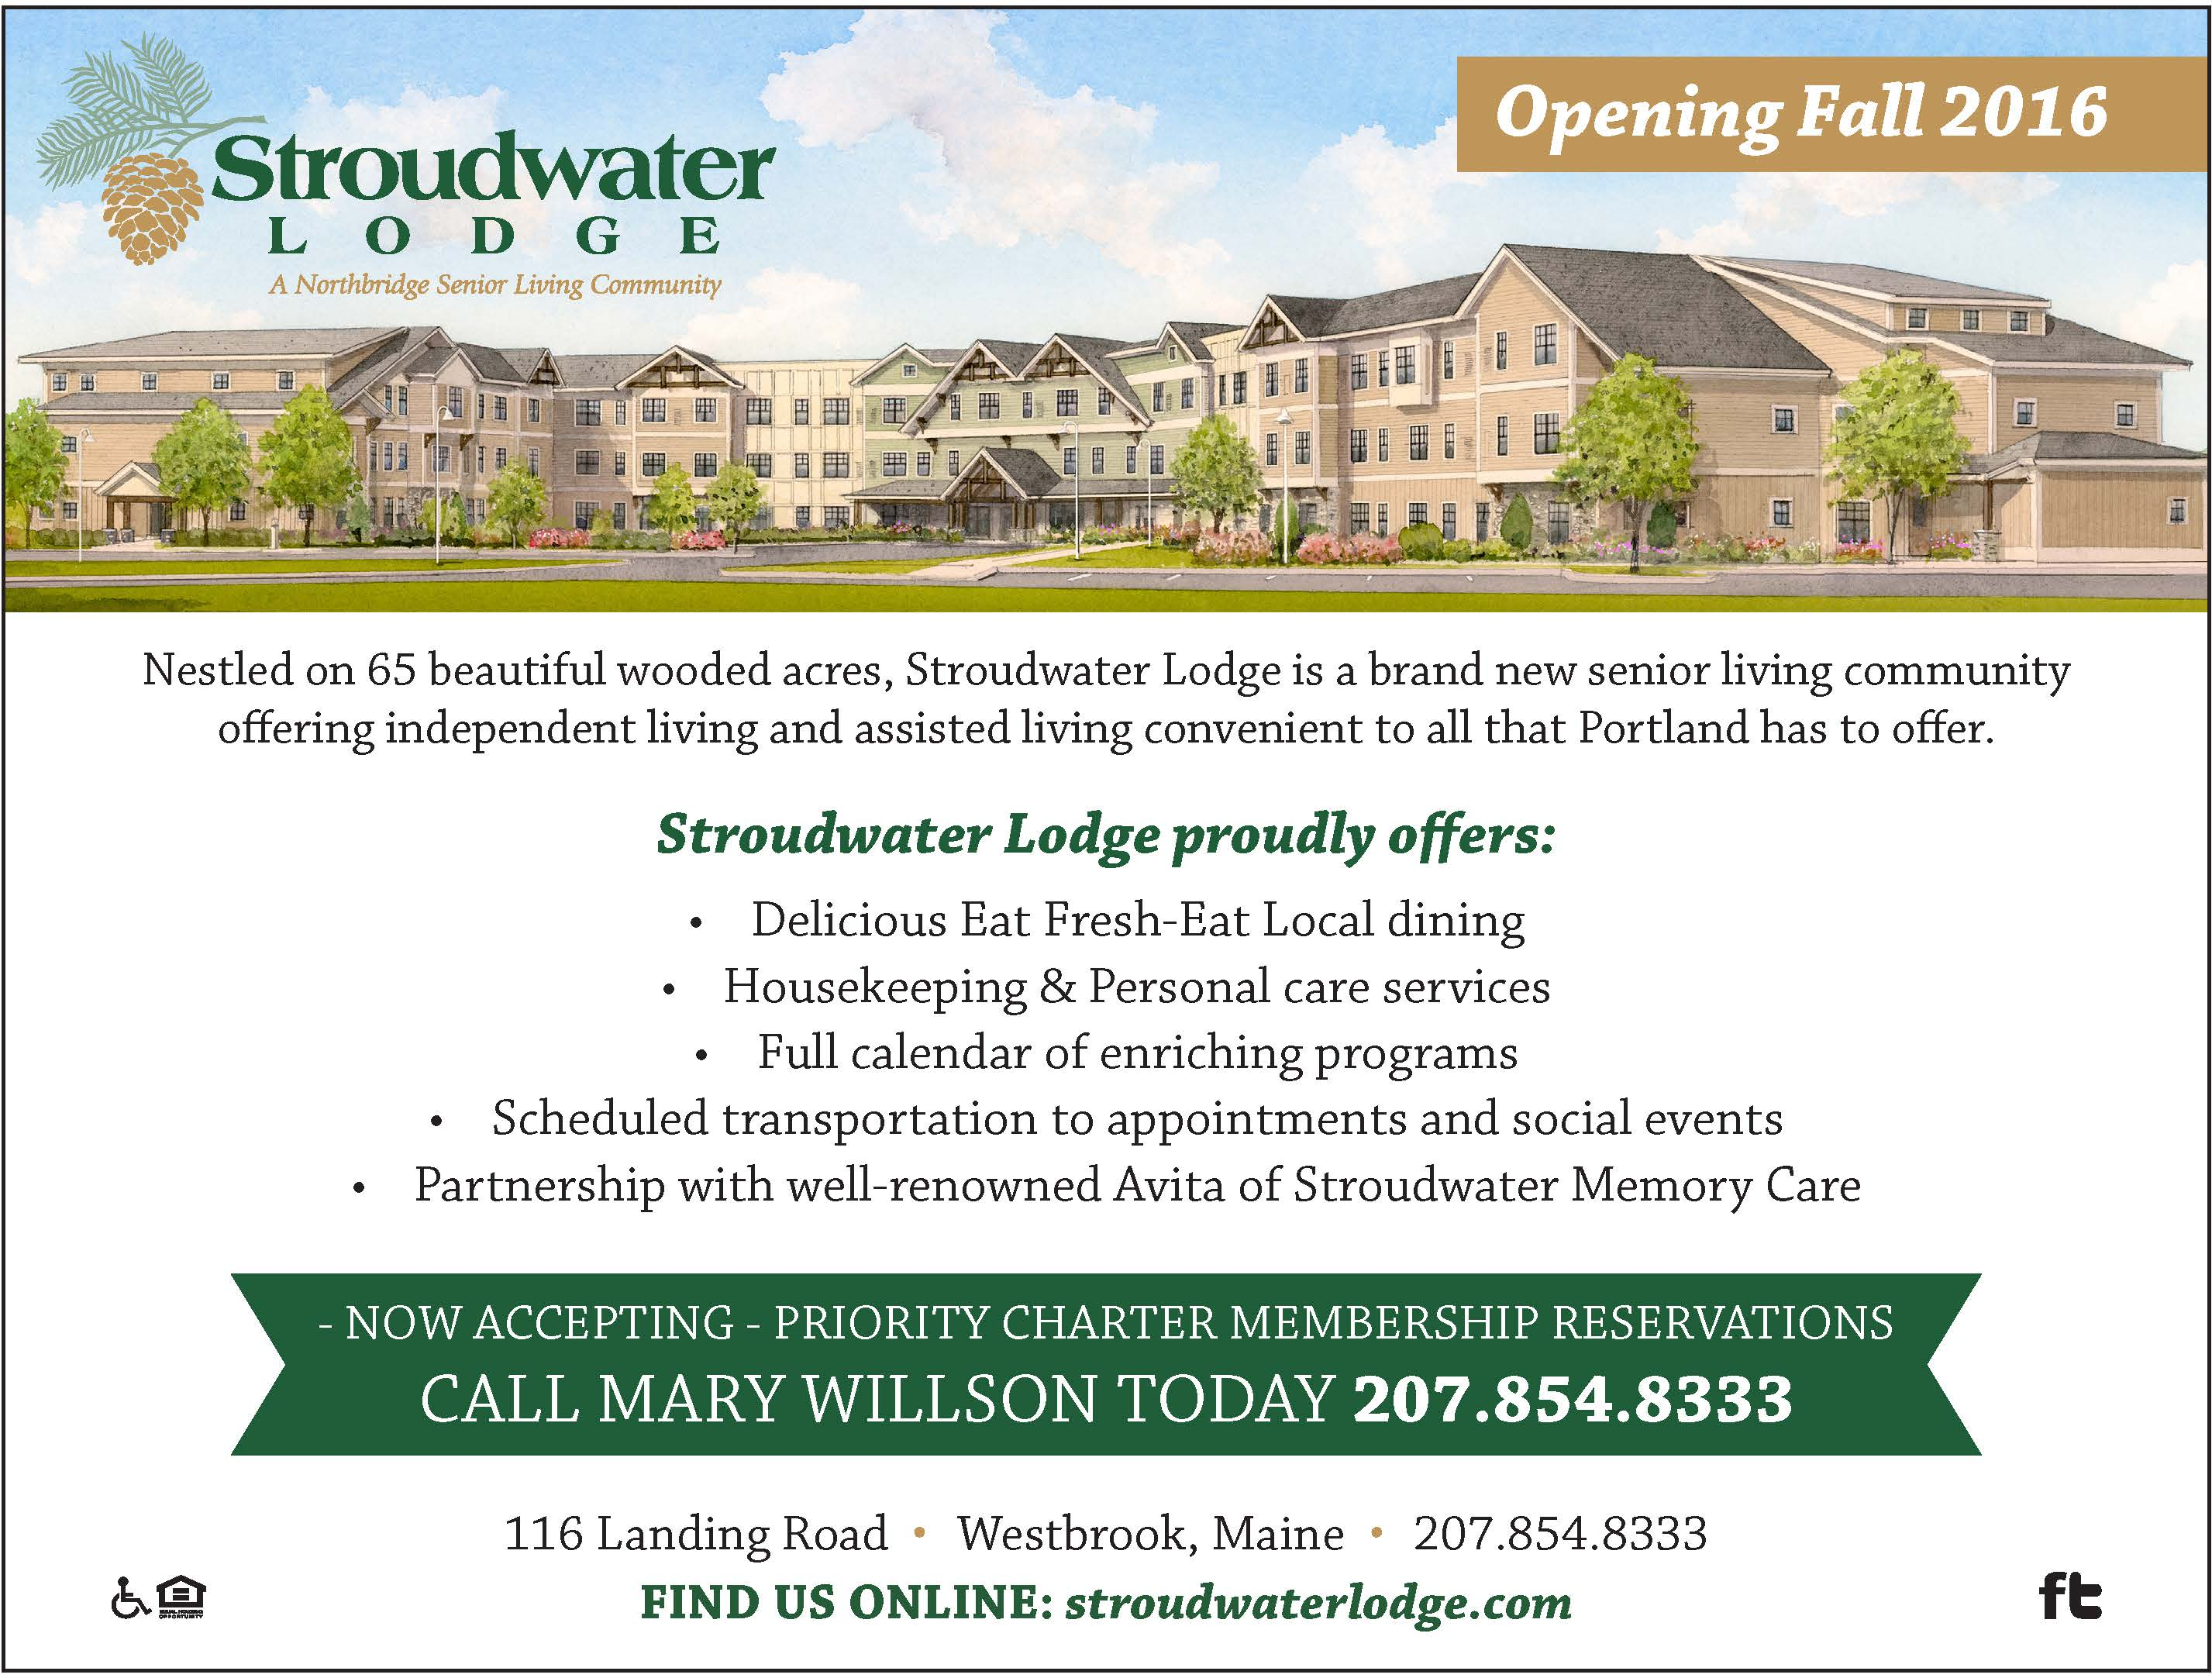 http://northbridgecos.com/stroudwater-lodge/